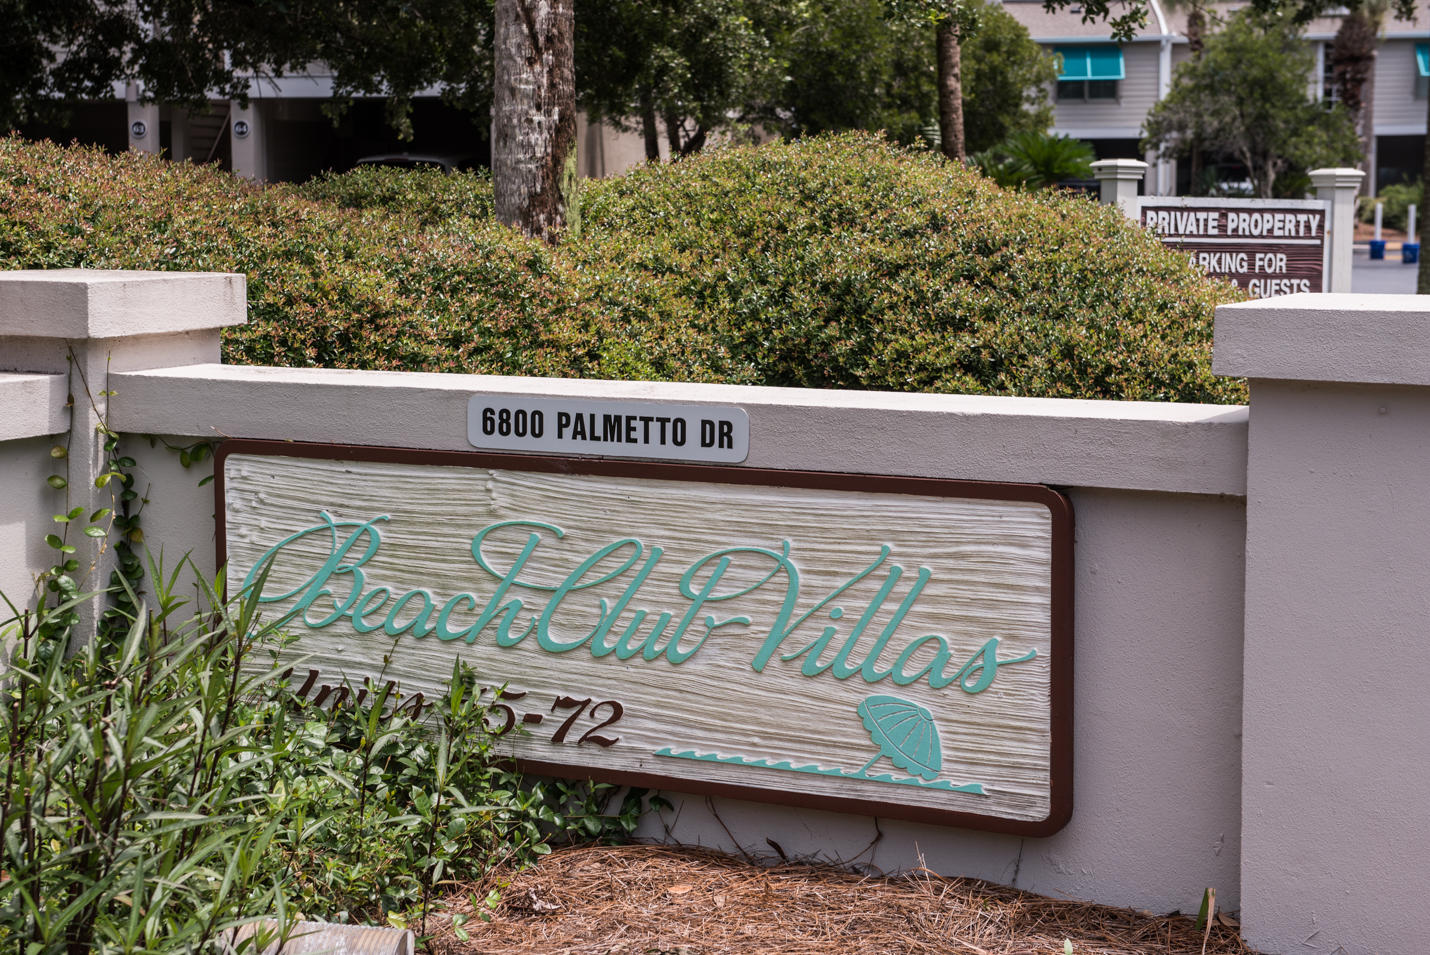 Beach Club Villas Homes For Sale - 66 Beach Club Villas, Isle of Palms, SC - 2